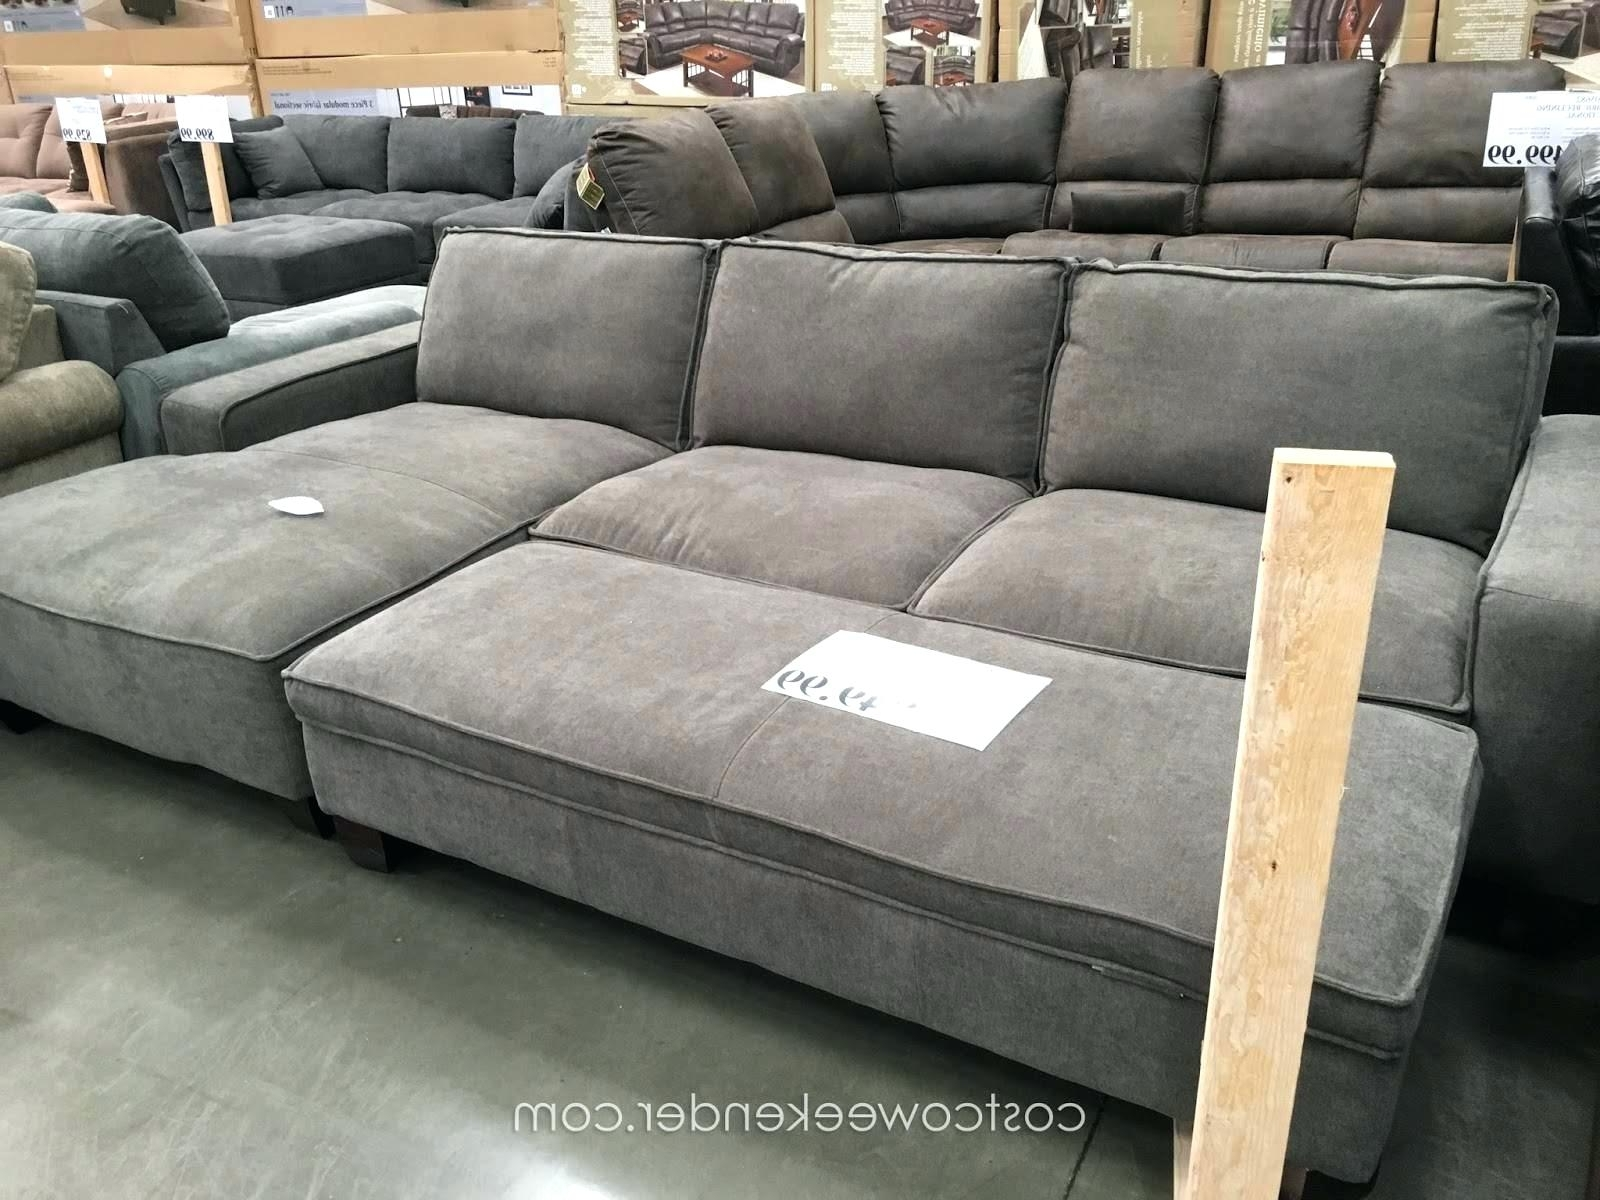 Newest Berkline Sofas Throughout Berkline Sofa Recliner Costco And Loveseat – Jasonatavastrealty (View 16 of 20)